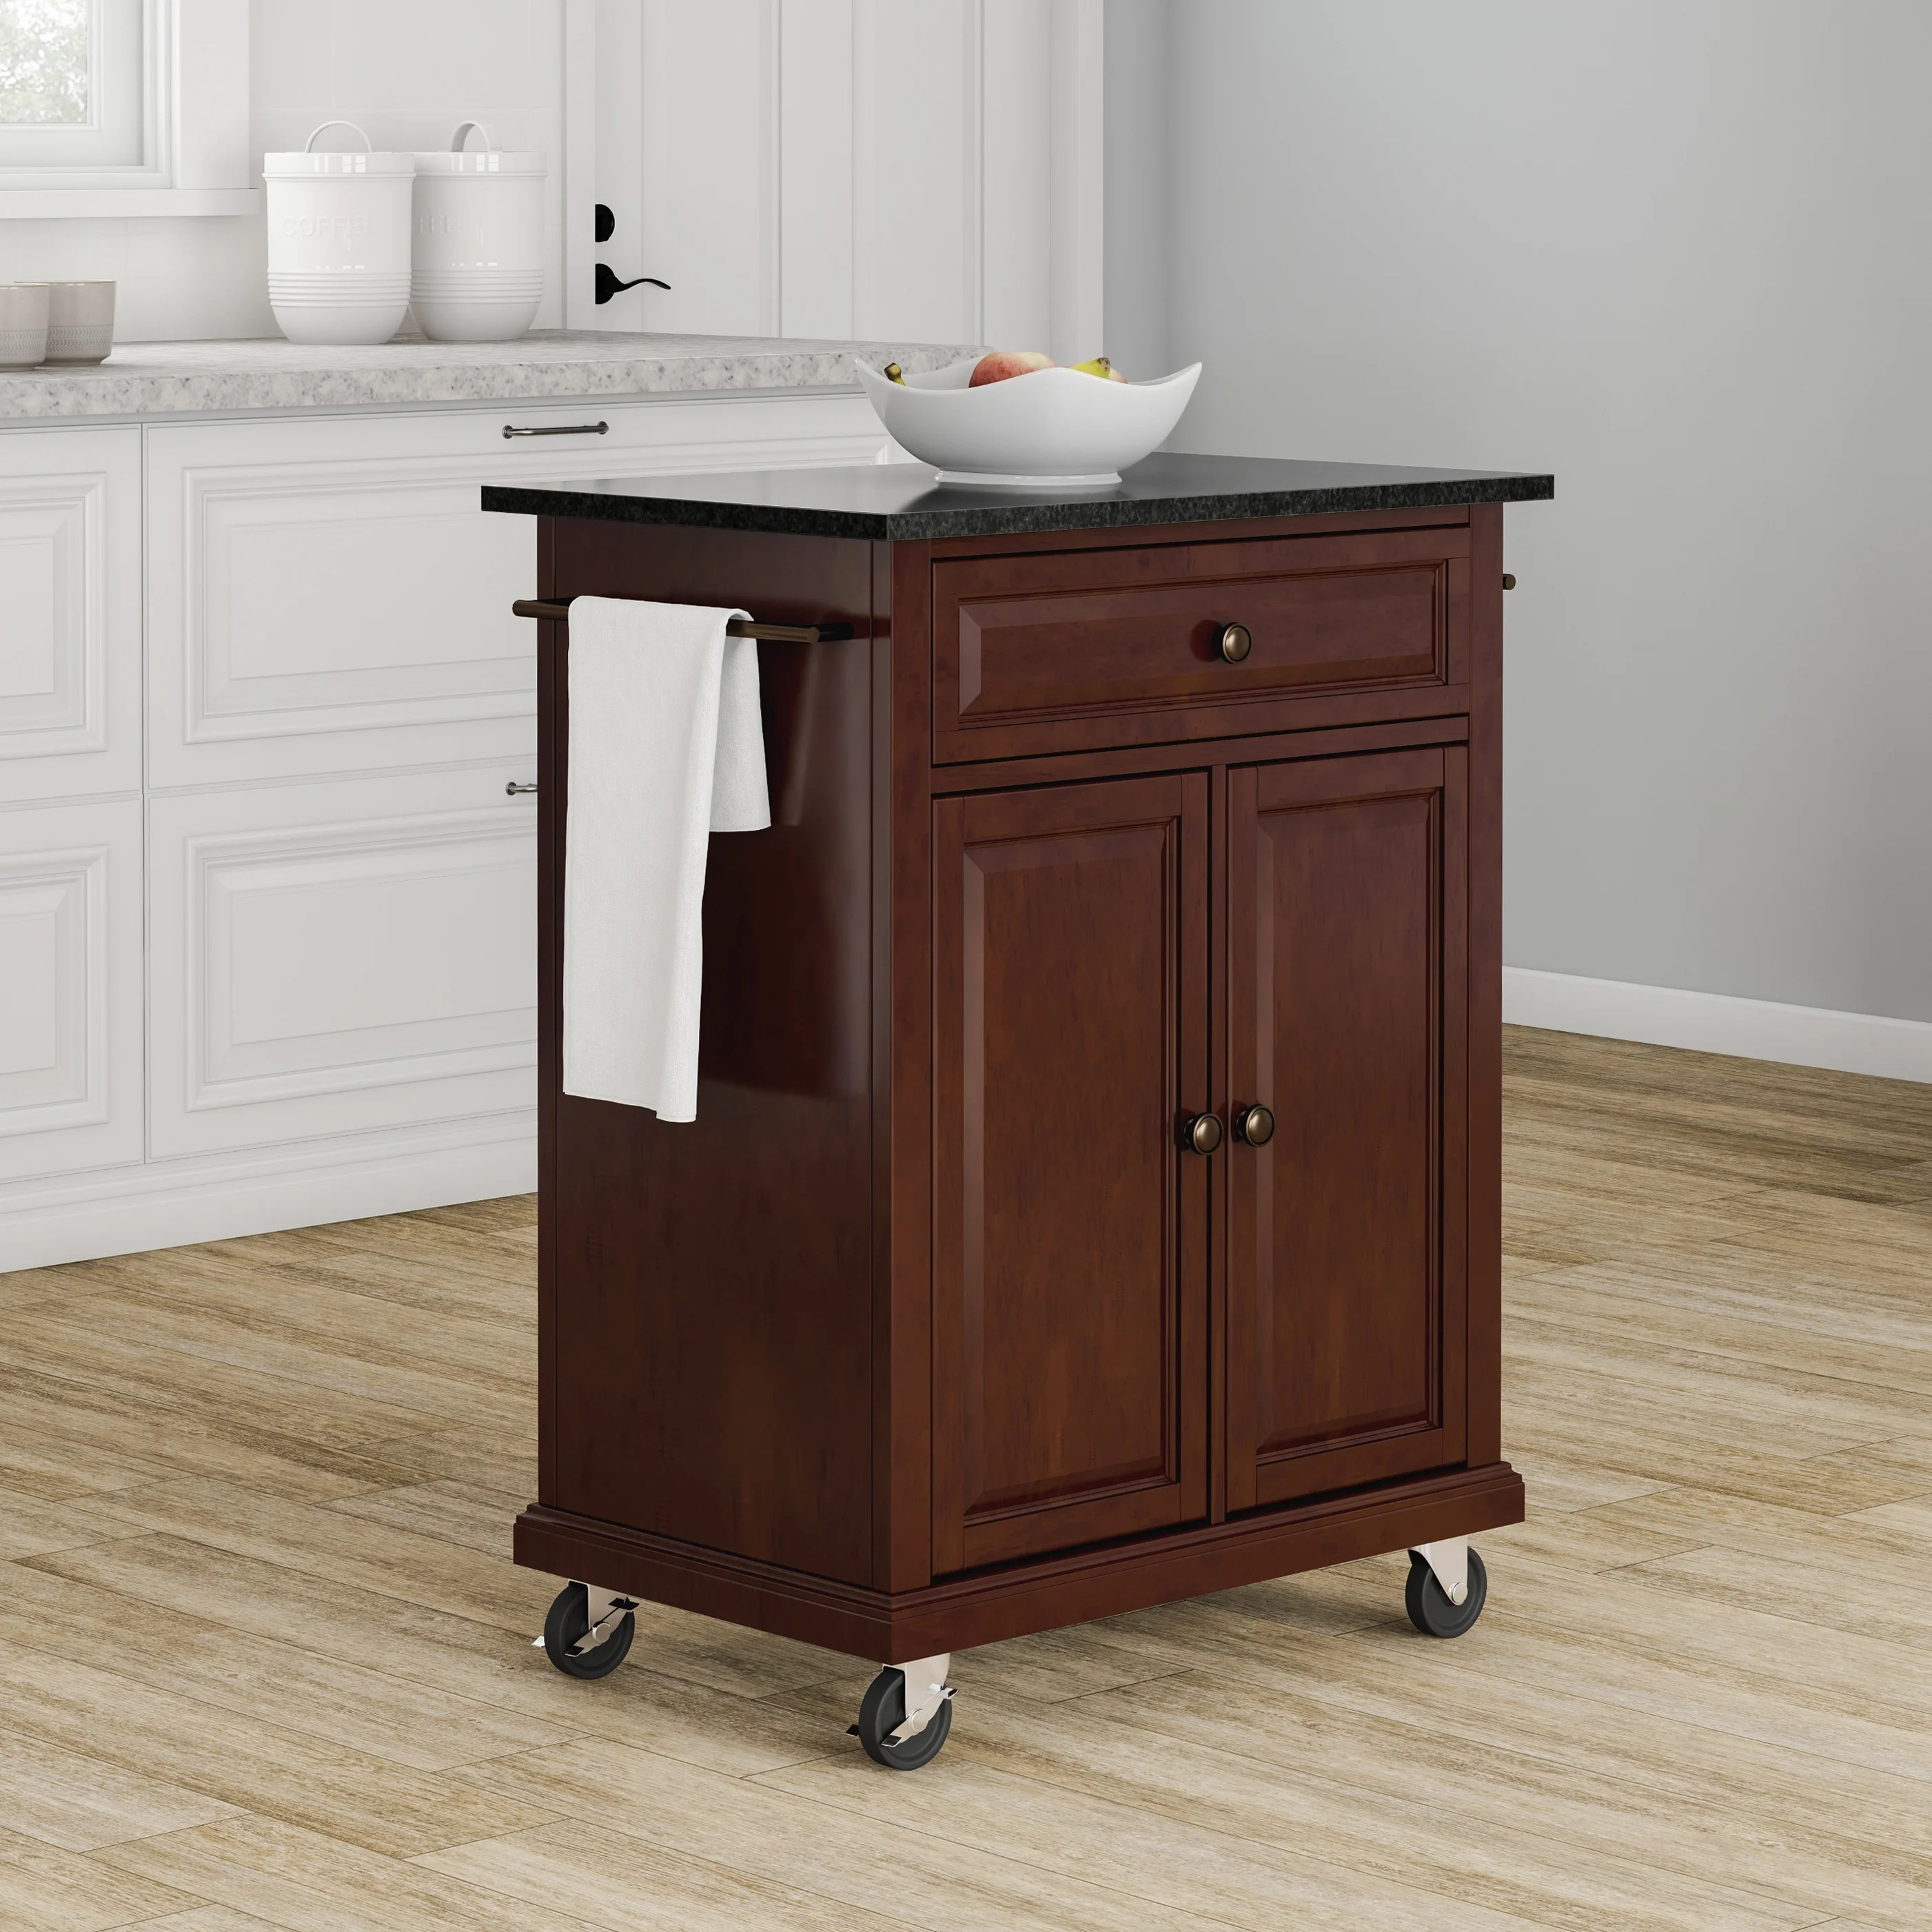 portable kitchen cart cabinet latches shop copper grove kawartha solid black granite top island in vintage mahogany finish free shipping today overstock com 20931575